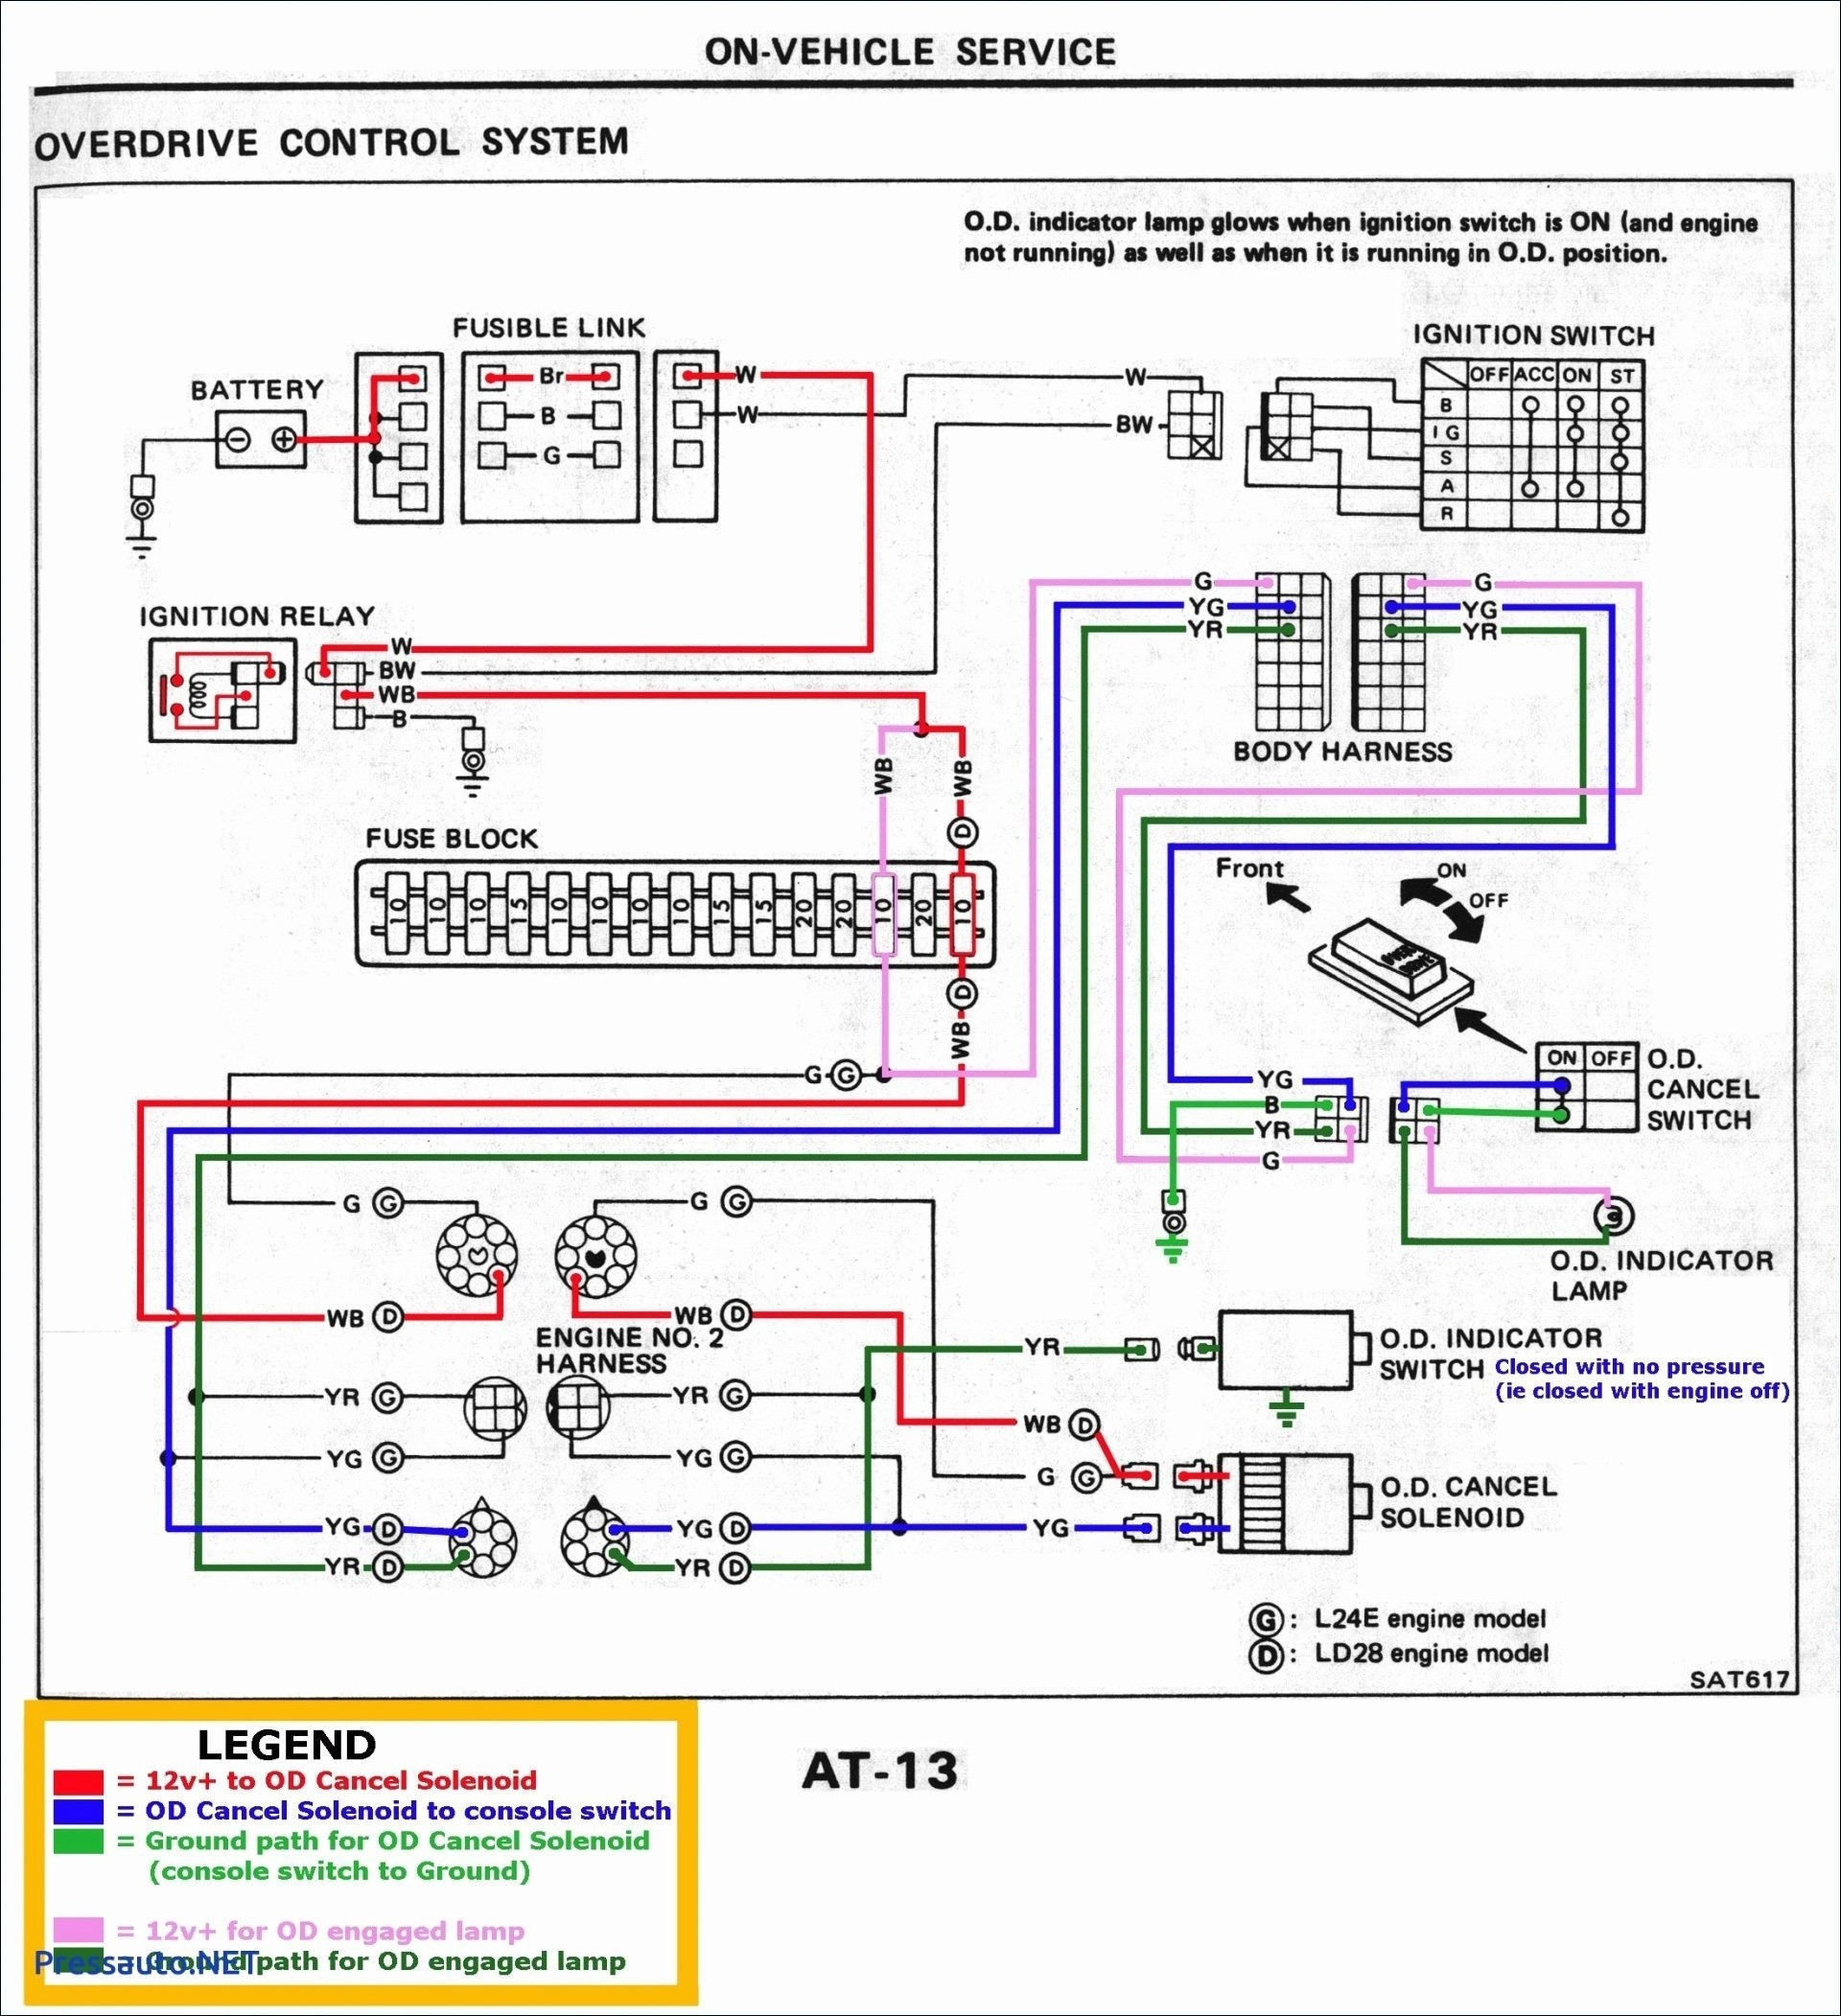 2004 dodge wiring diagram free picture schematic fender squier wiring diagram free picture schematic